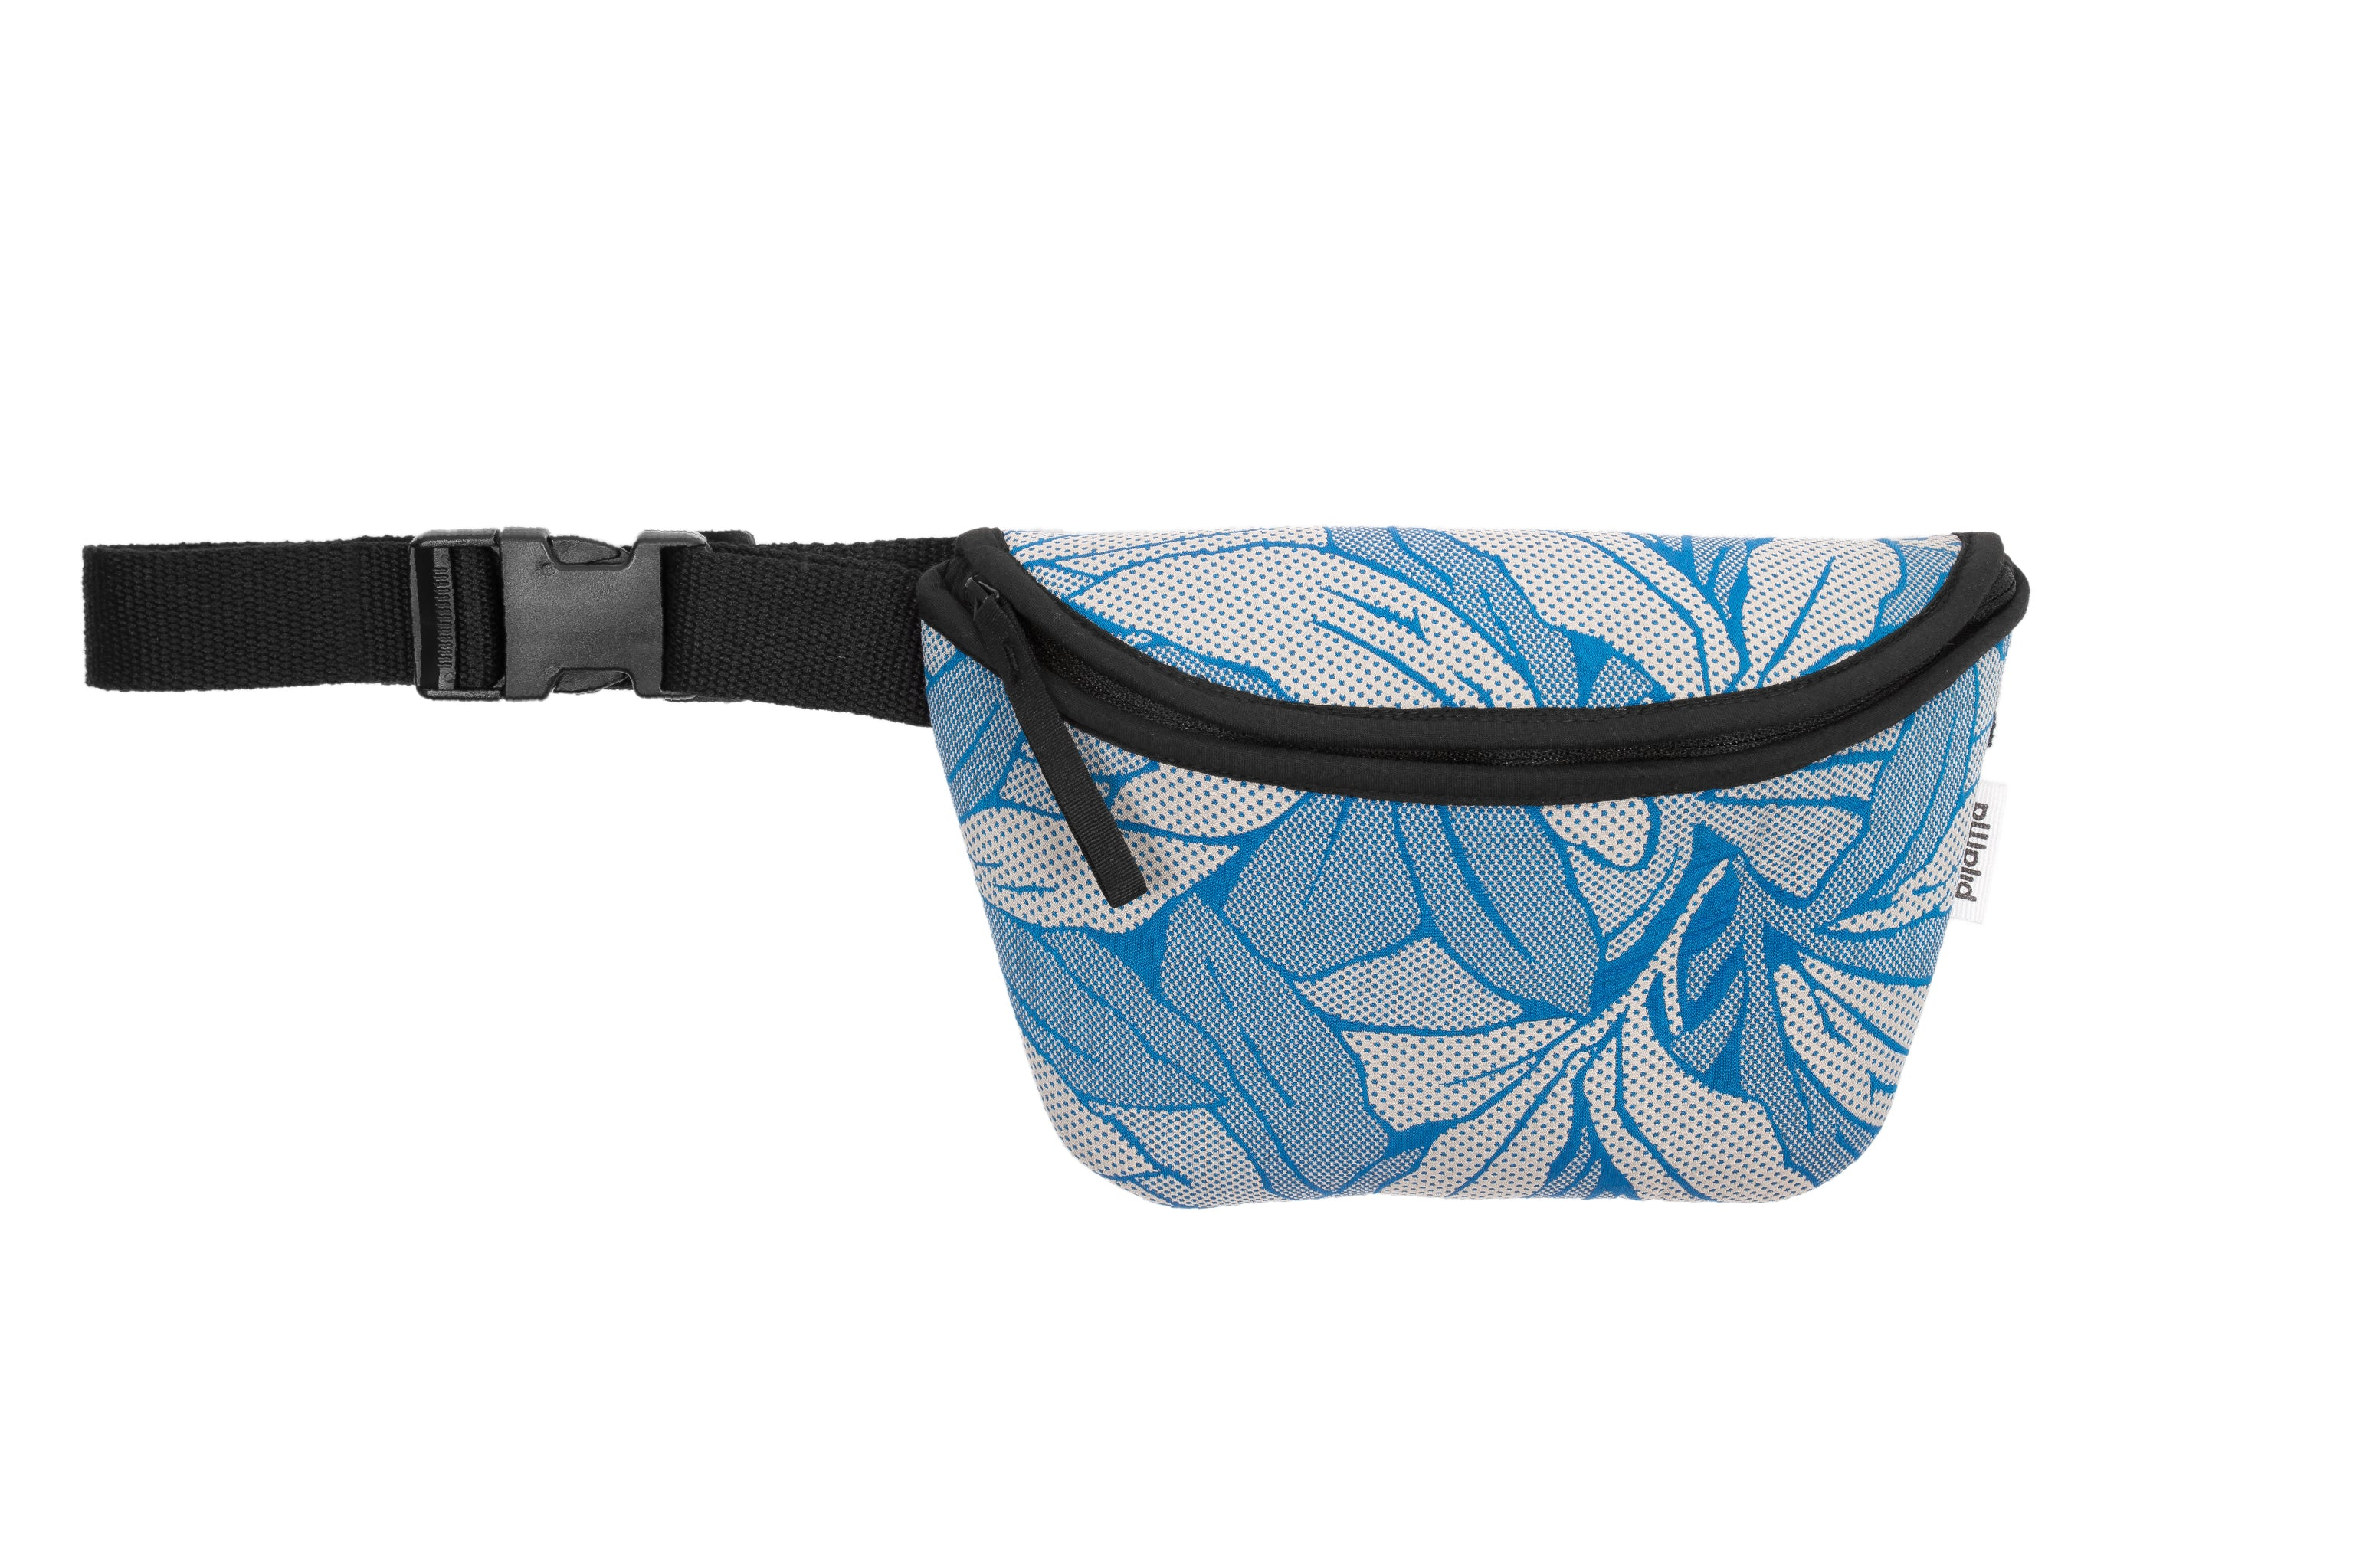 Bum Bag/Chest Bag with Adjustable Strap in Blue Flower Print